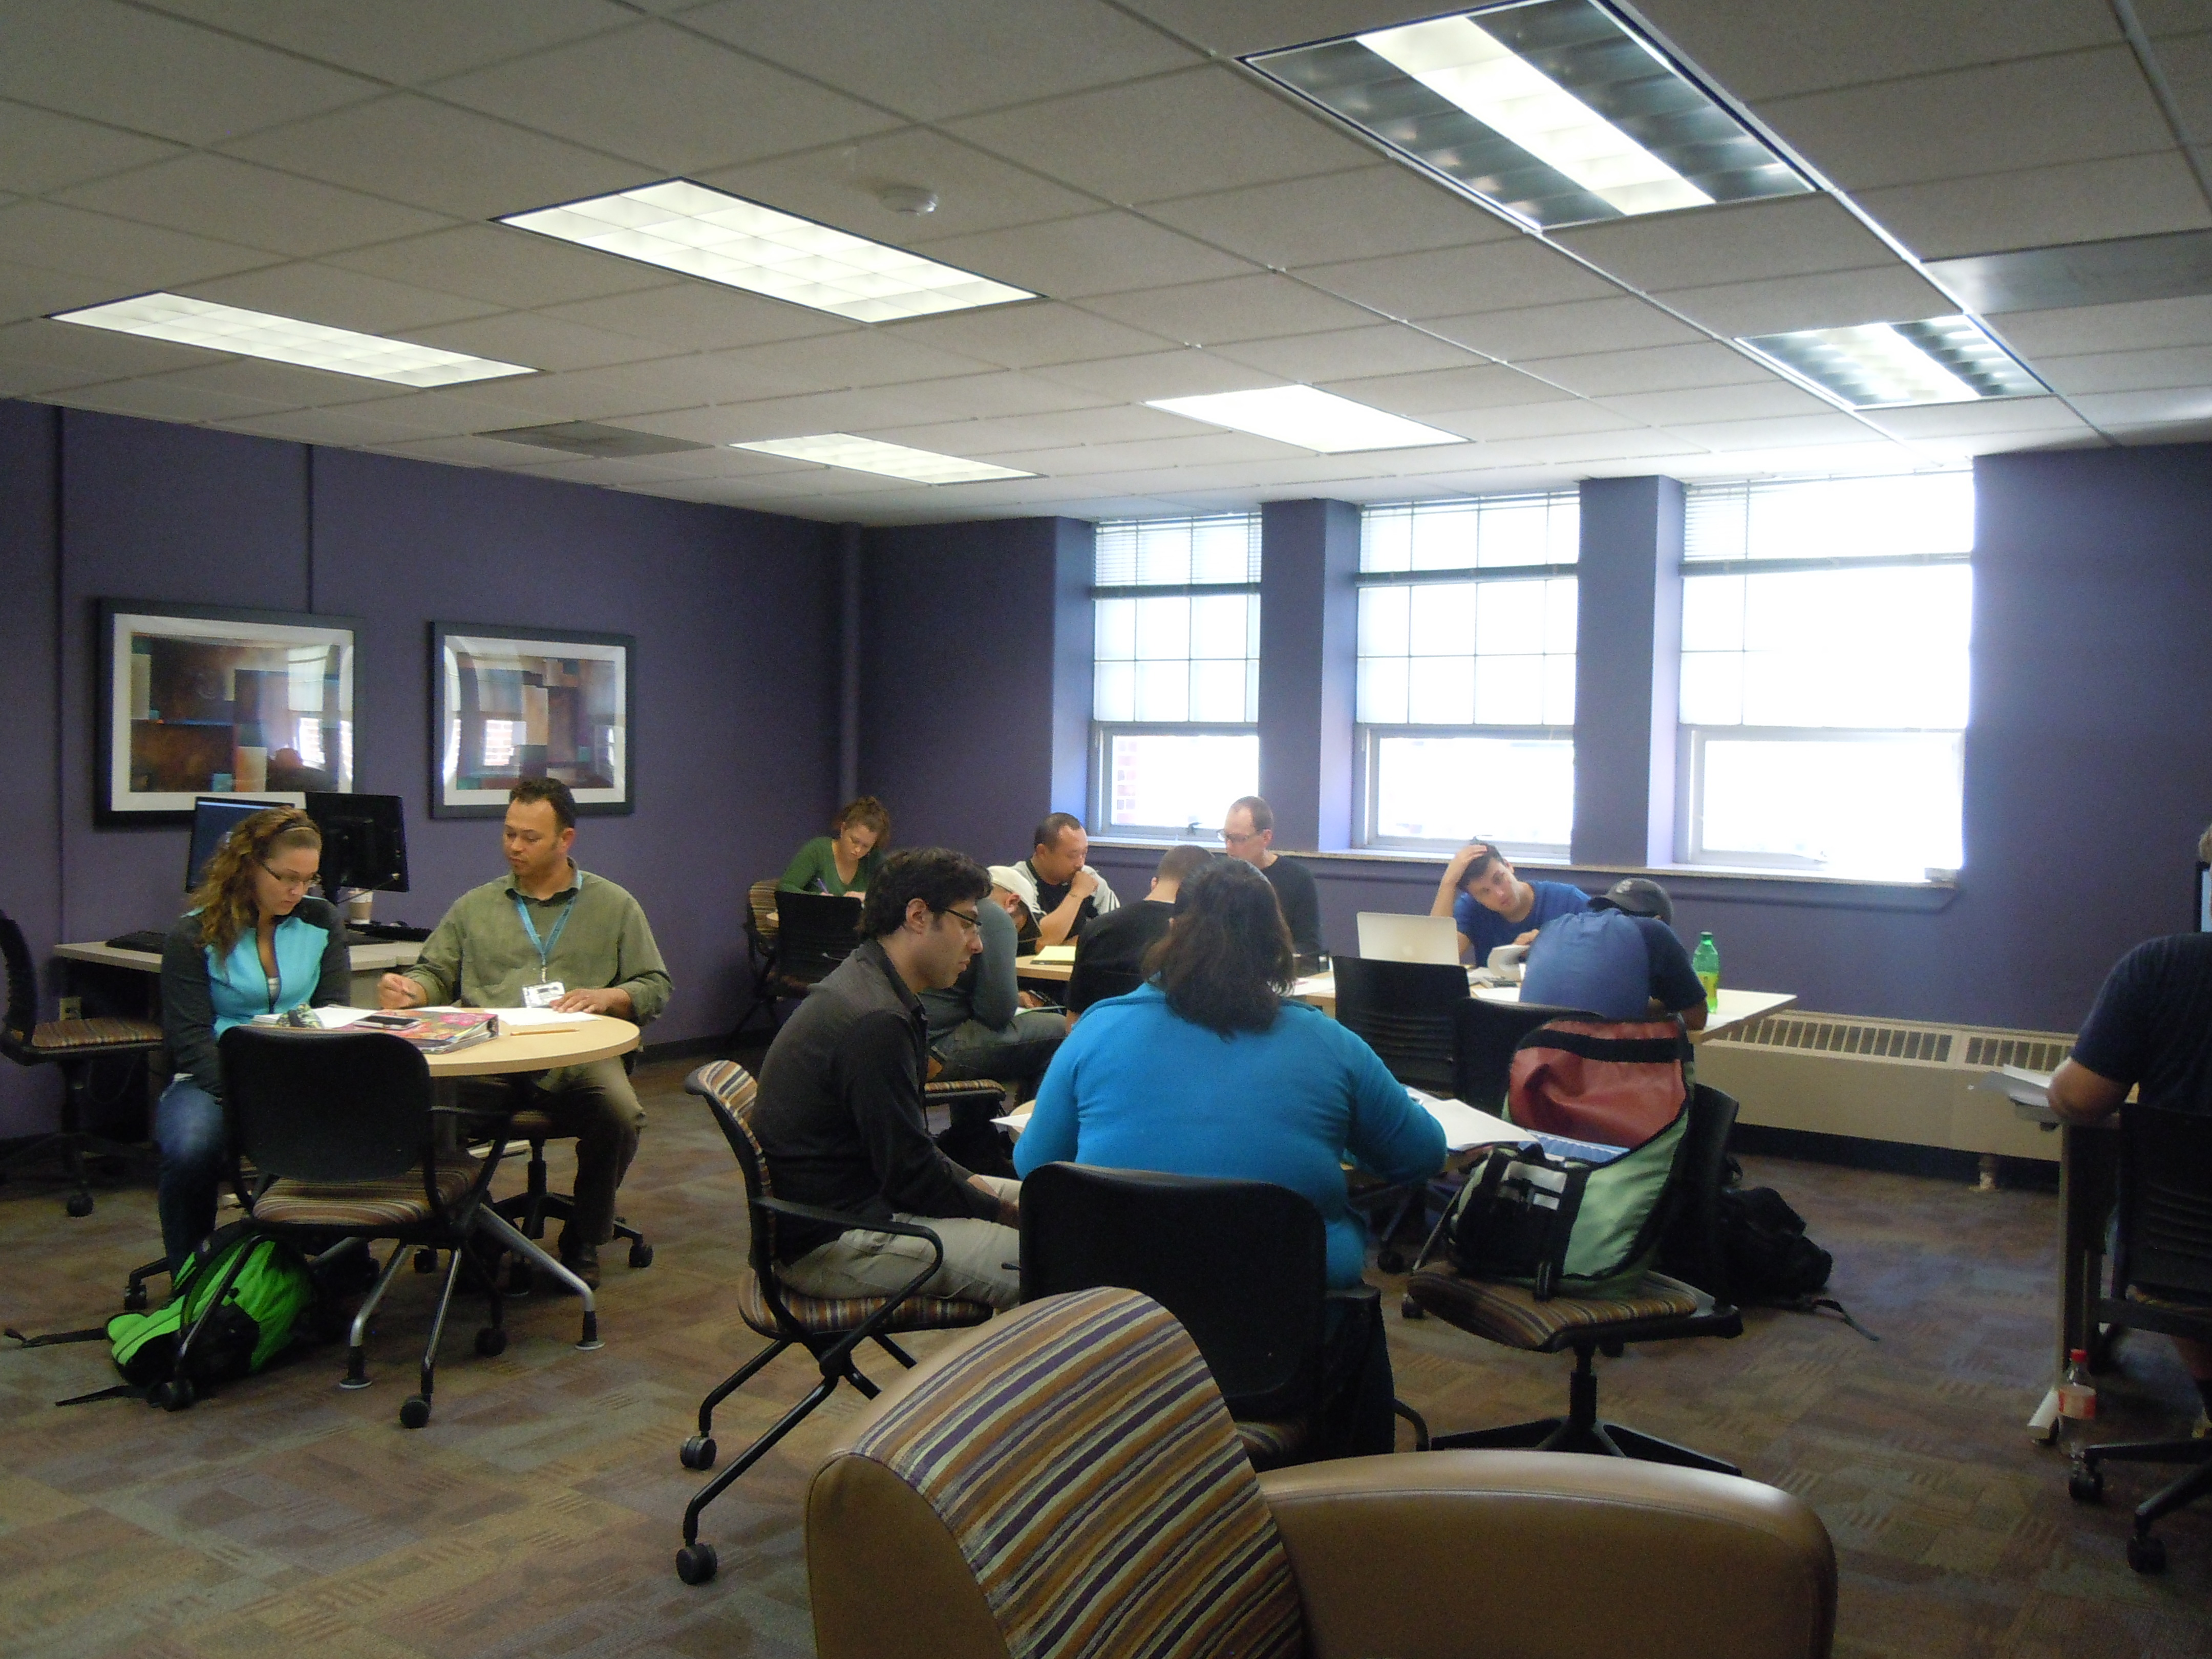 Students working in the SAC